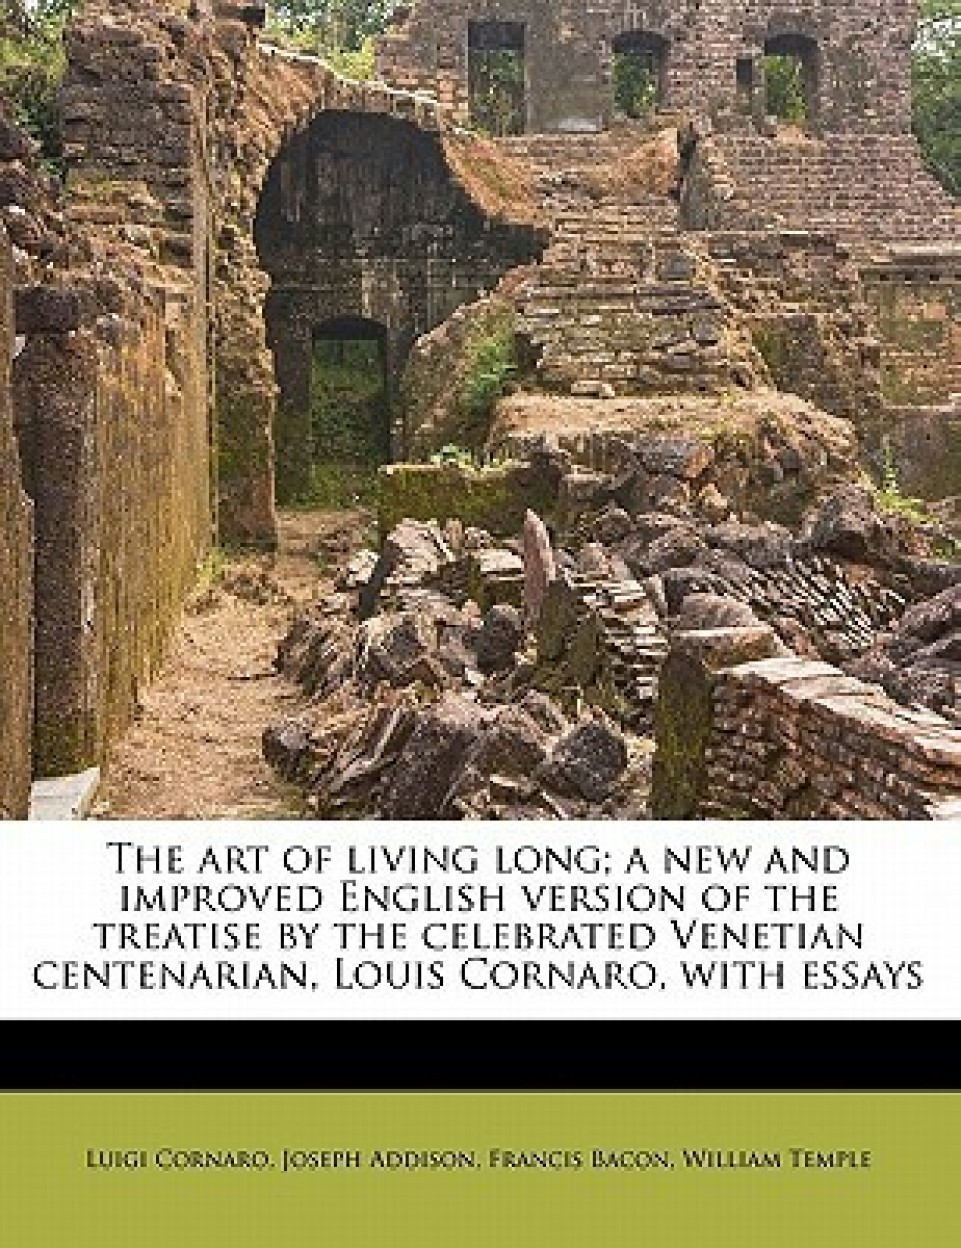 The Art Of Living Long; A New And Improved English Version Of The Treatise By The Celebrated Venetian Centenarian, Louis Cornaro by Francis Bacon,Joseph Addison,Luigi Cornaro